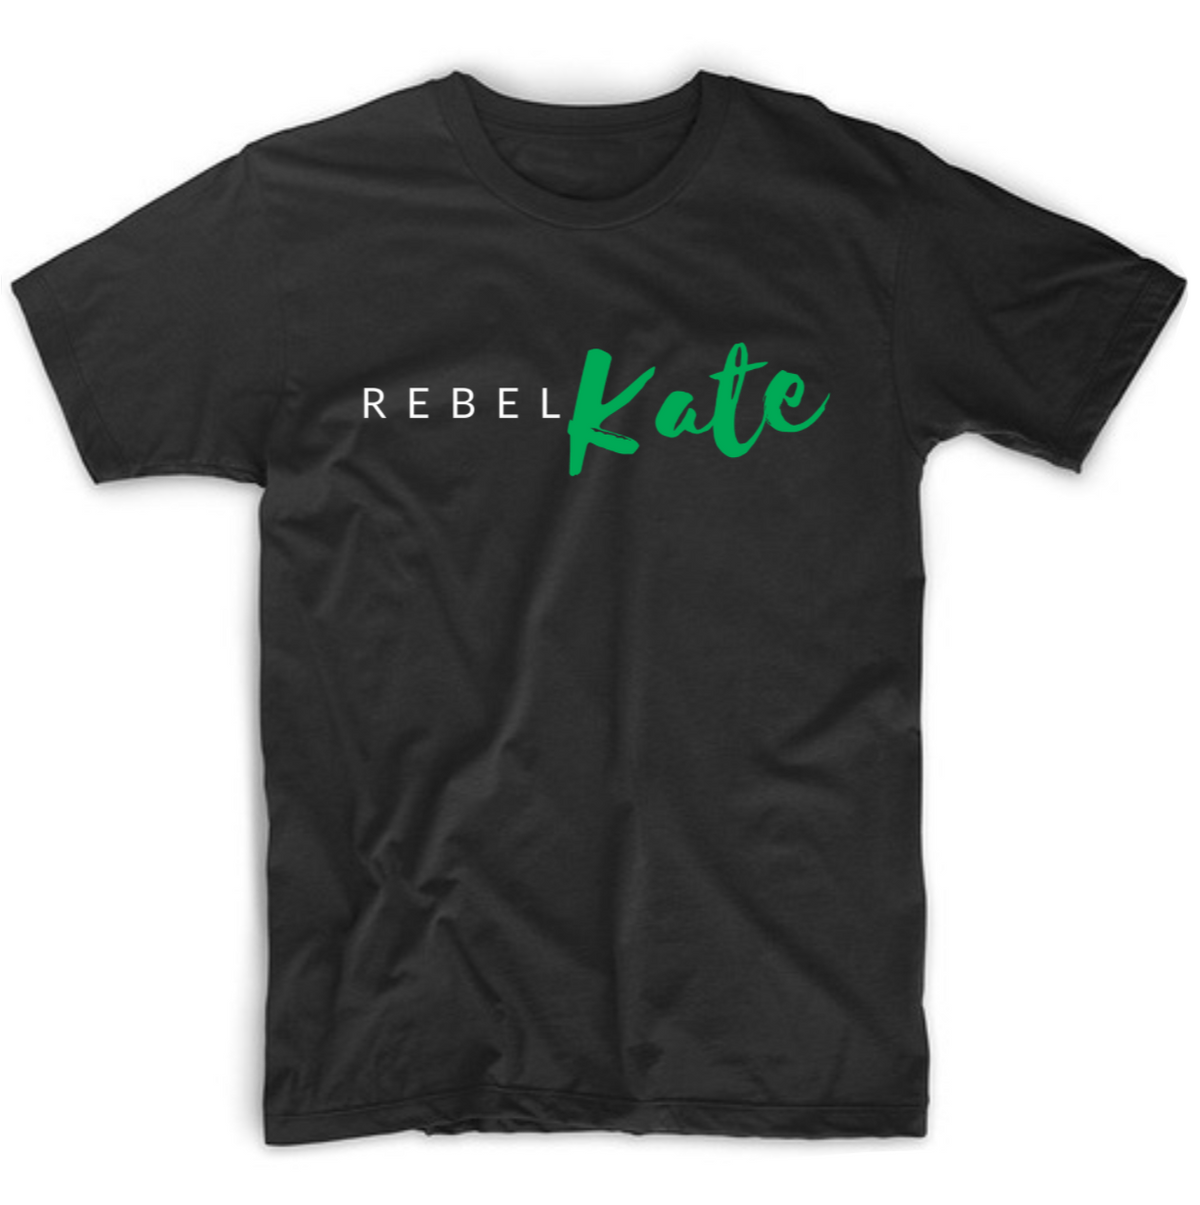 Rebel Kate T-shirt